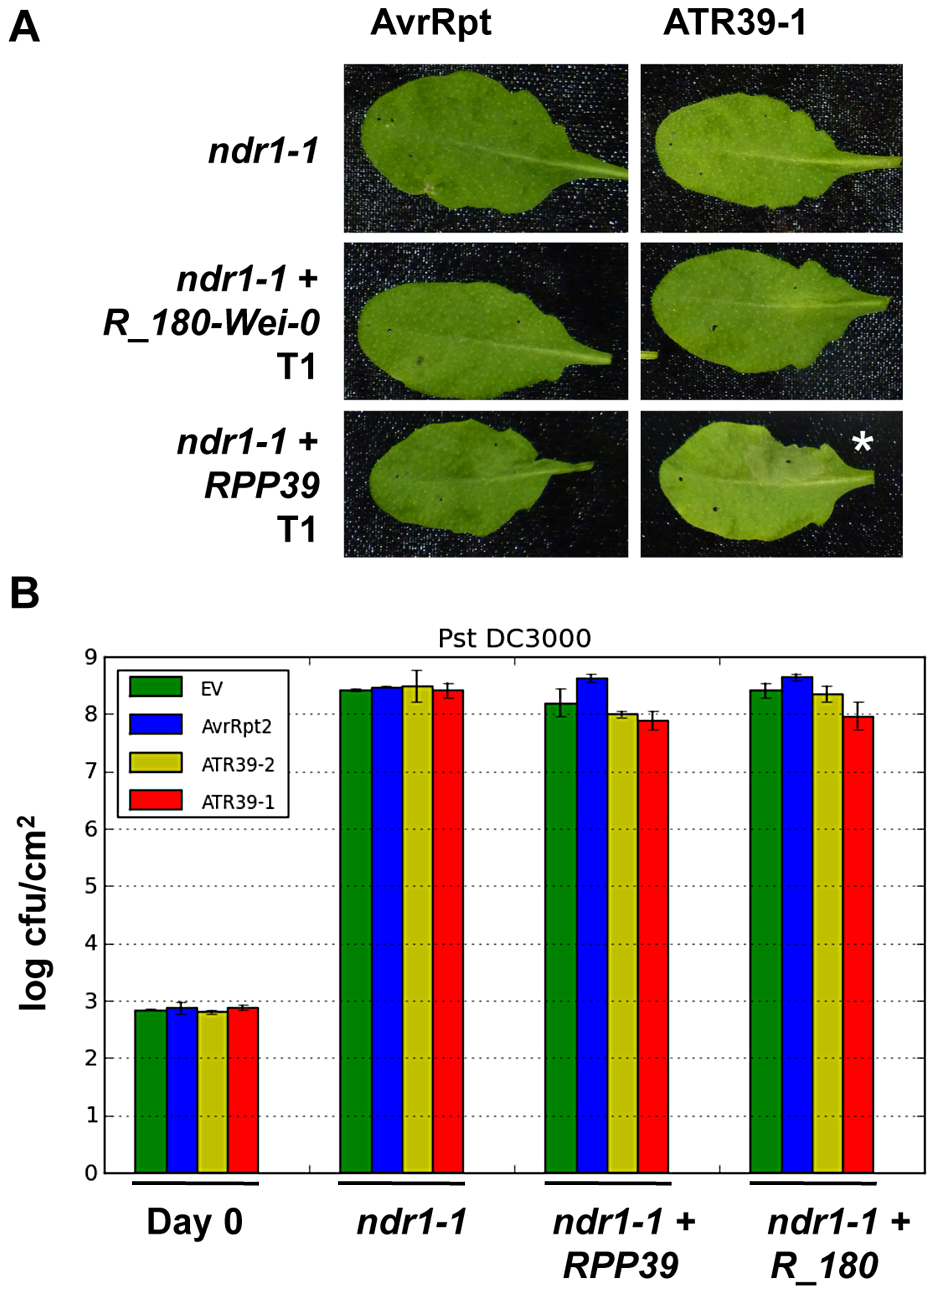 NDR1 is required for full resistance but dispensable for HR mediated by RPP39.